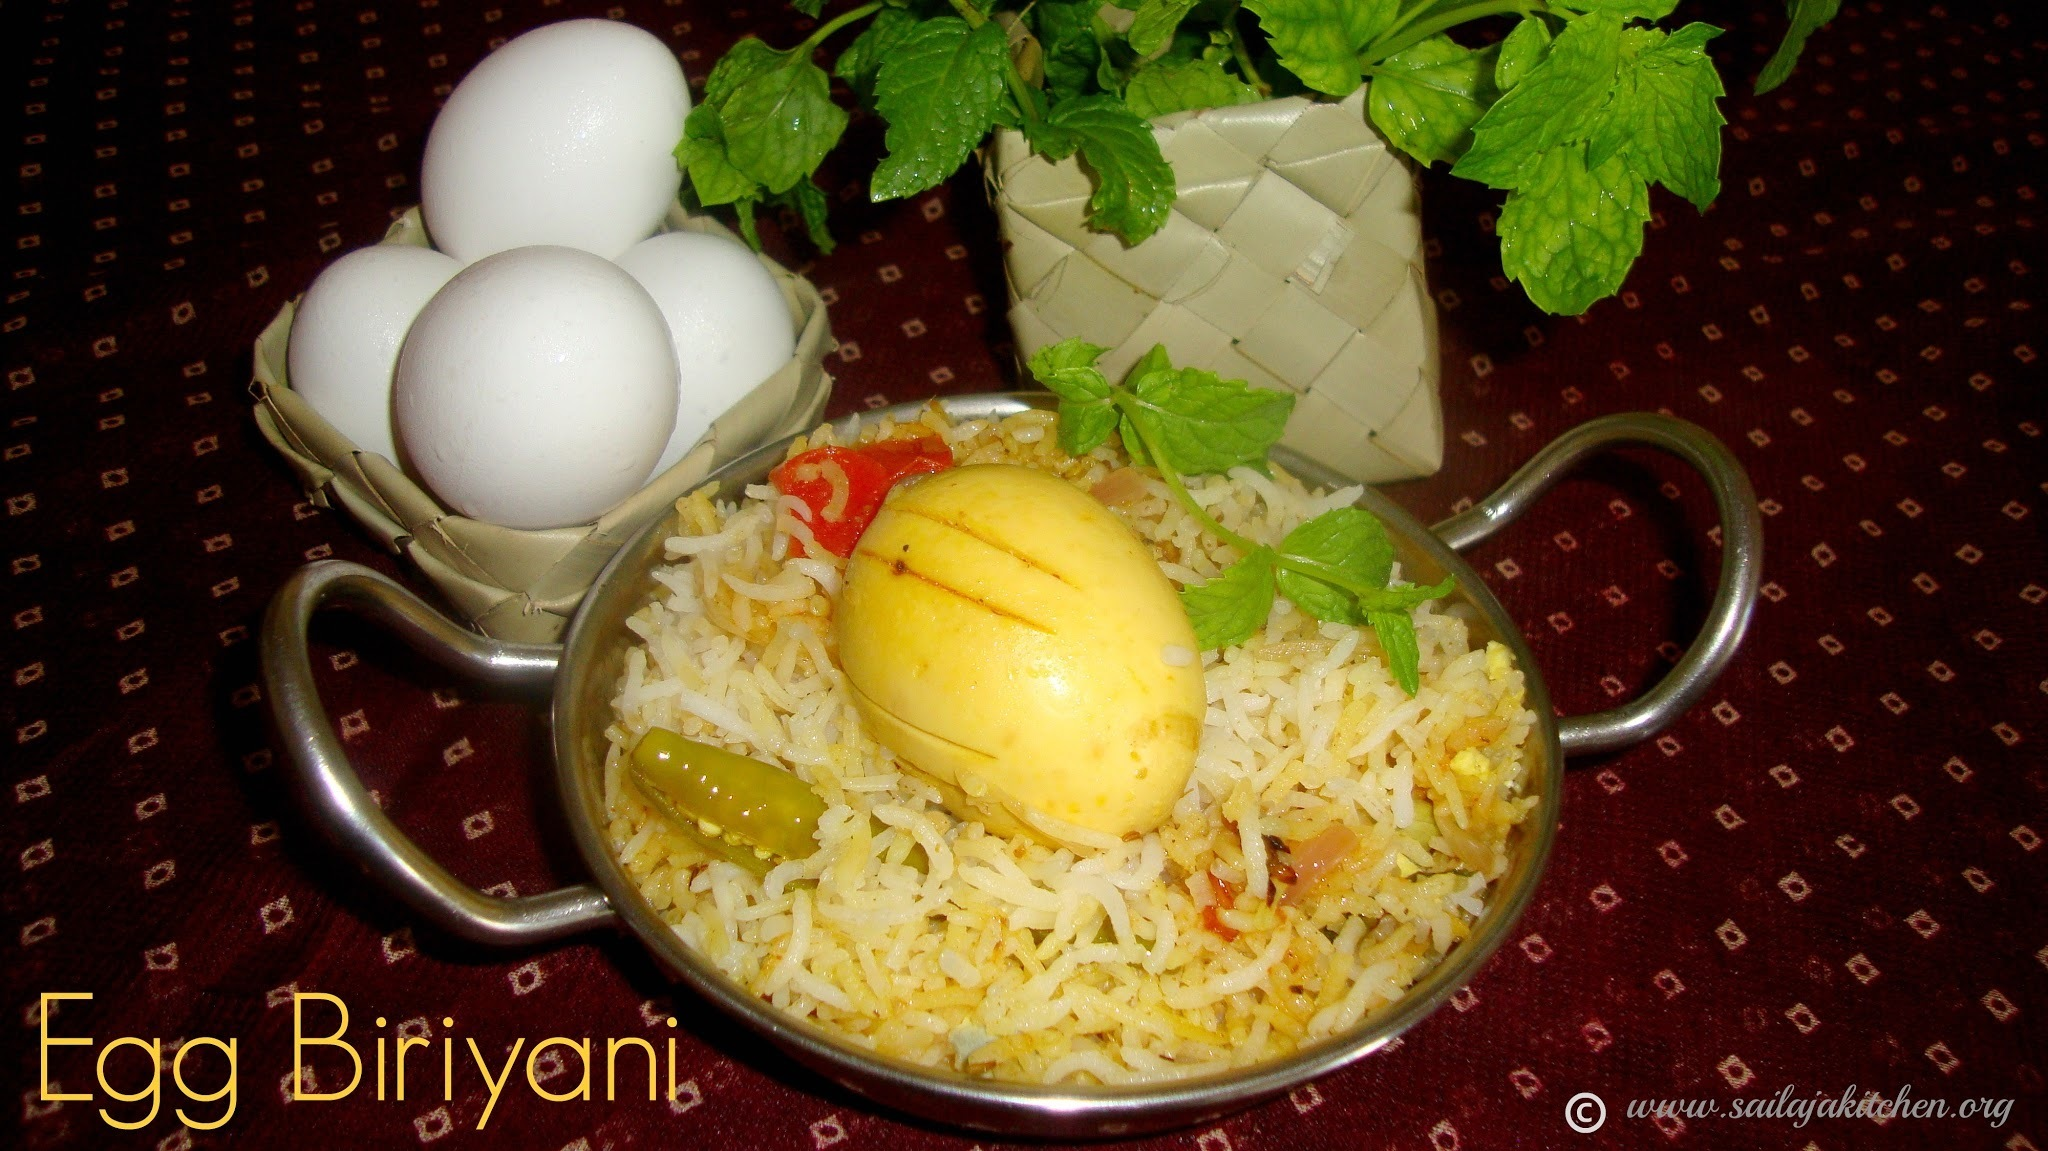 Egg Biryani Recipe / Egg Biriyani Recipe / Muttai Biriyani / Hyderabadi Egg Biryani Recipe